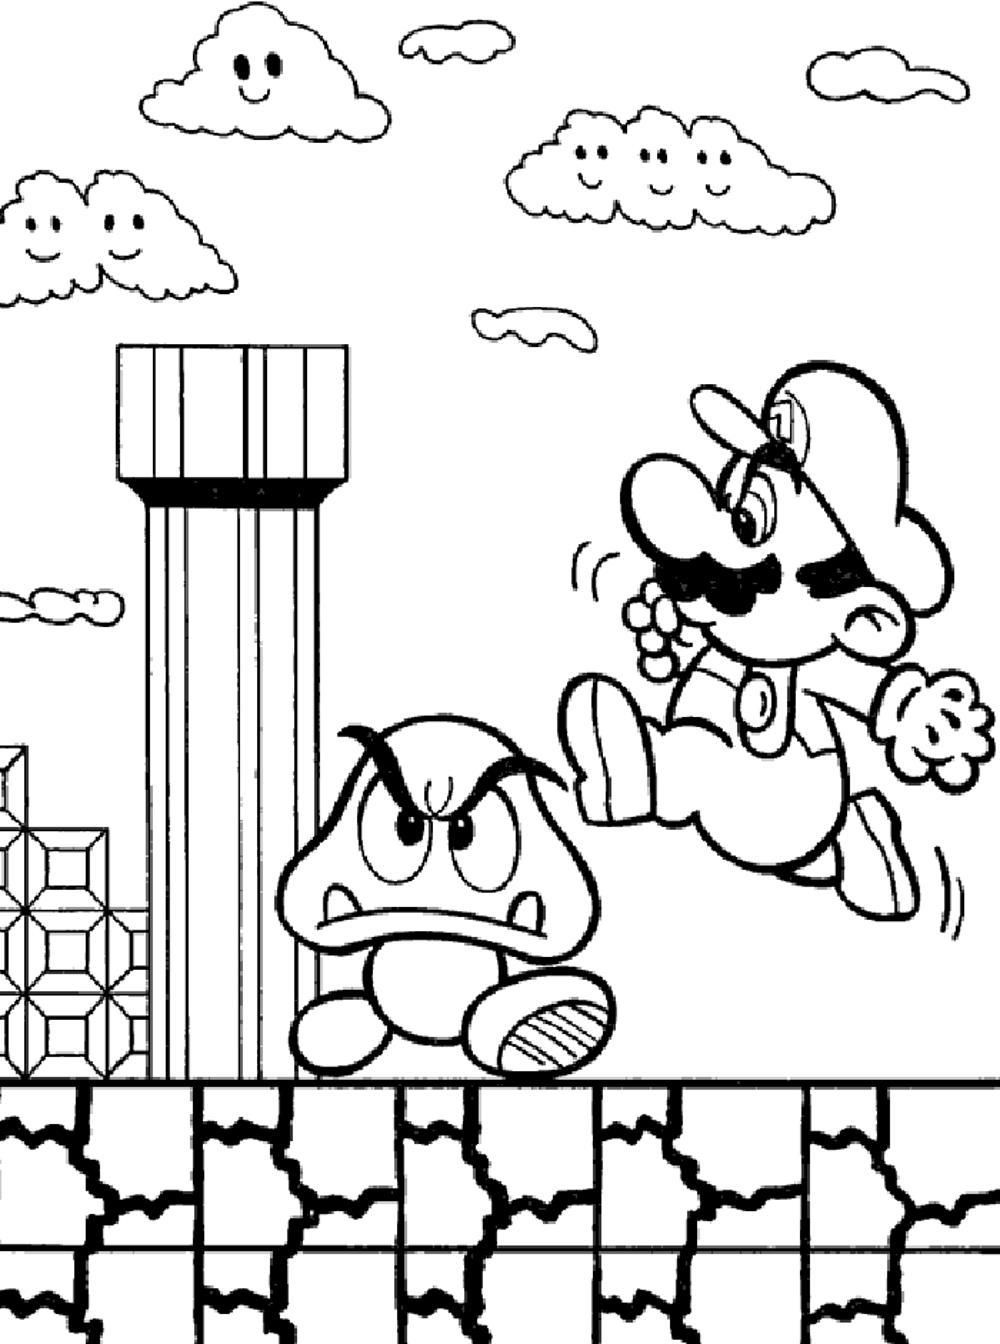 _^) mario bros printable coloring pages | Color: Games | Pinterest ...